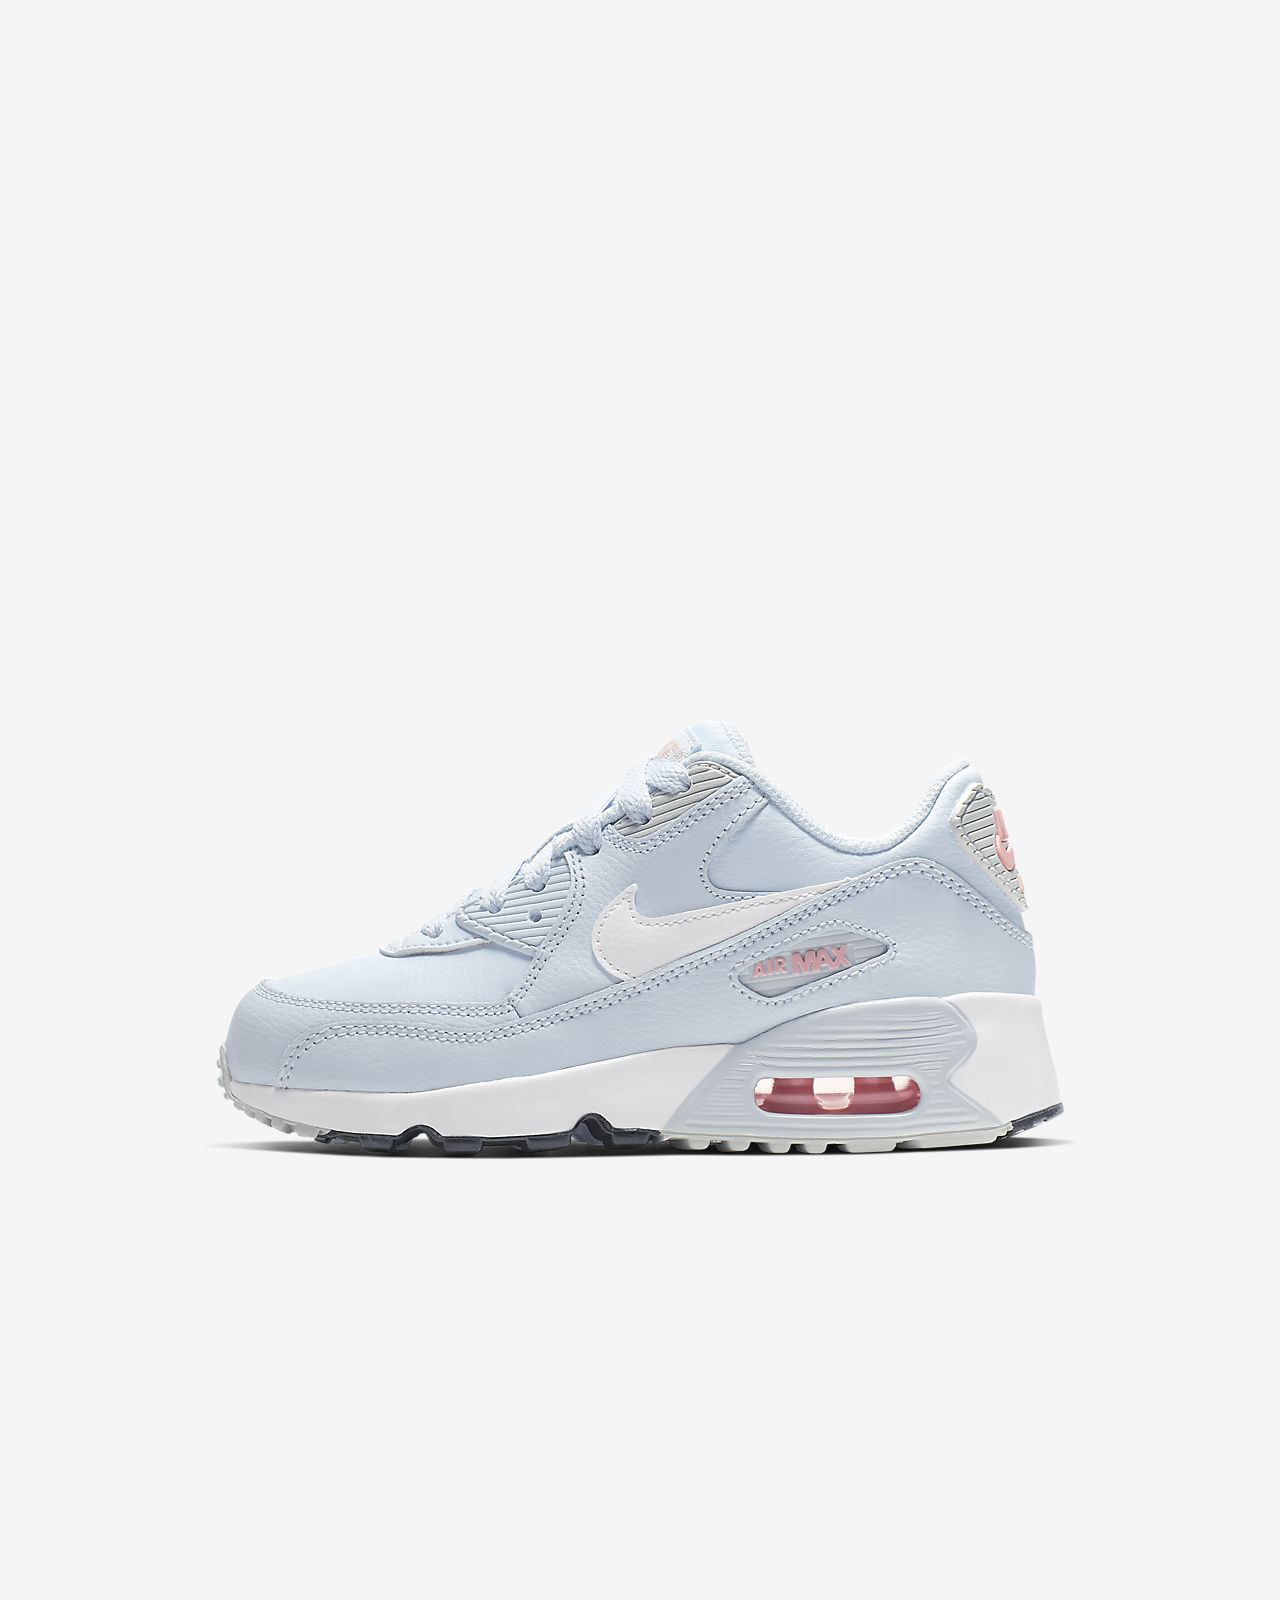 reputable site f964b cbe99 ... Nike Air Max 90 Leather Little Kids  Shoe